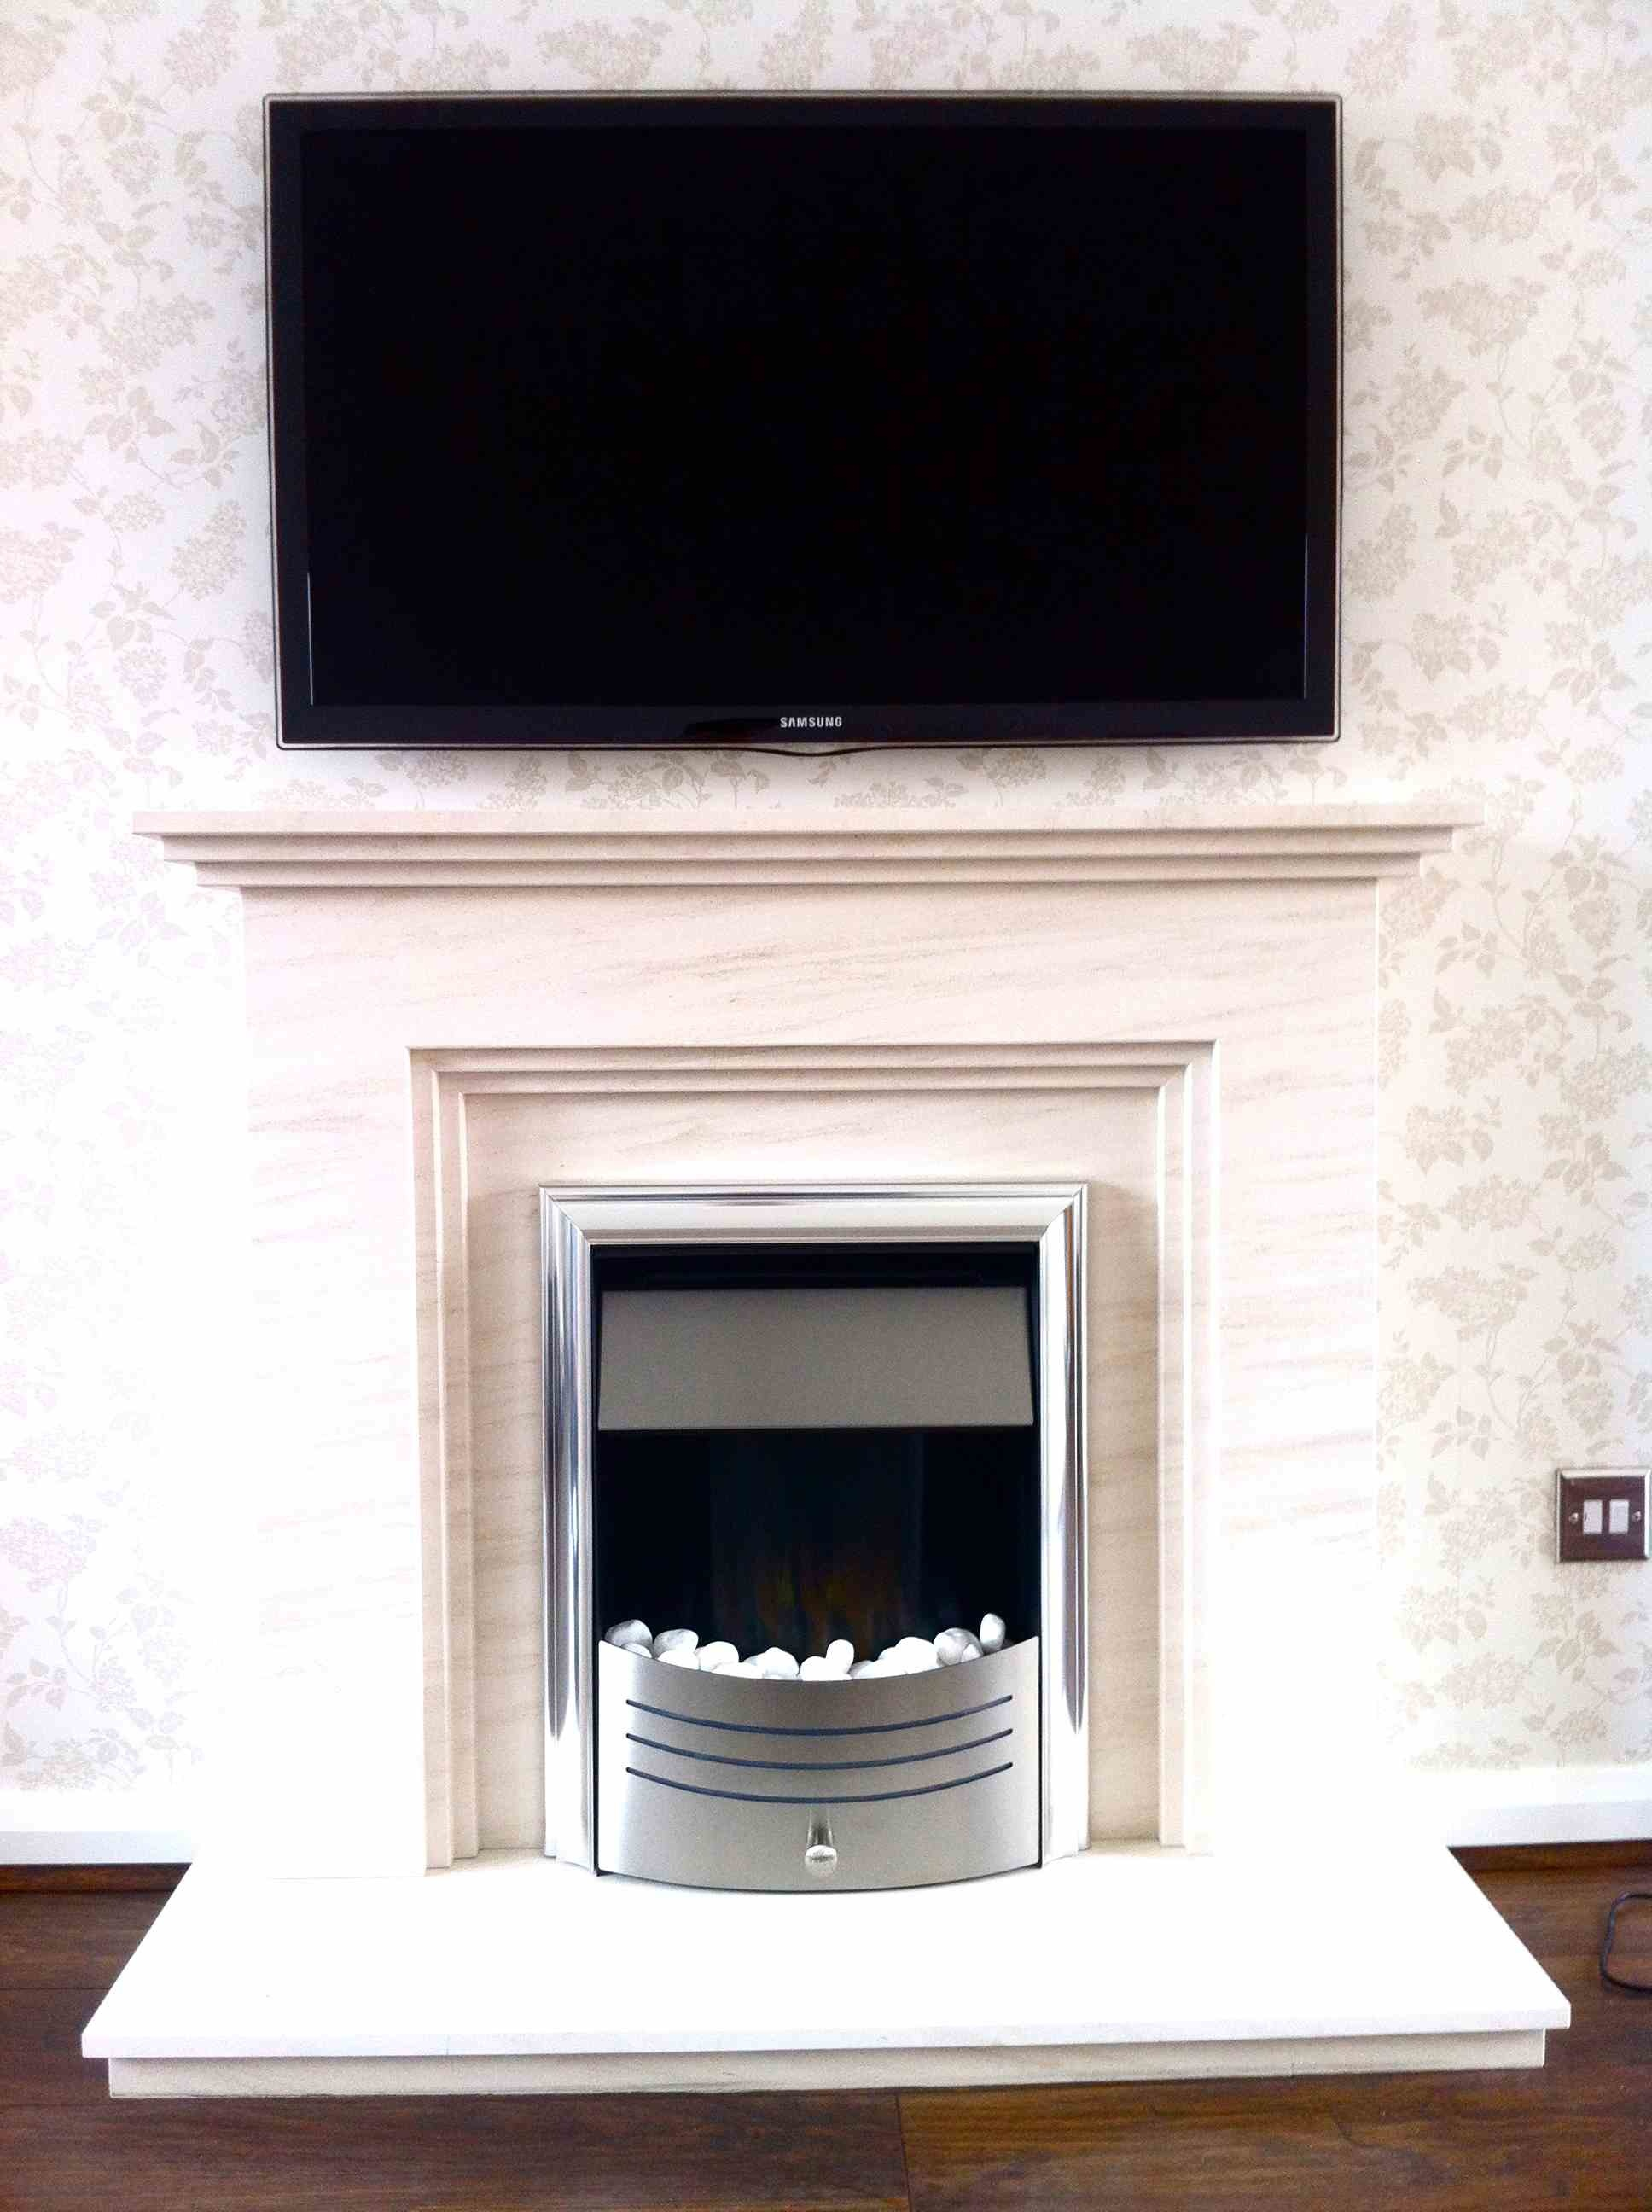 kitchen tv mount cabnits gallery | master av services